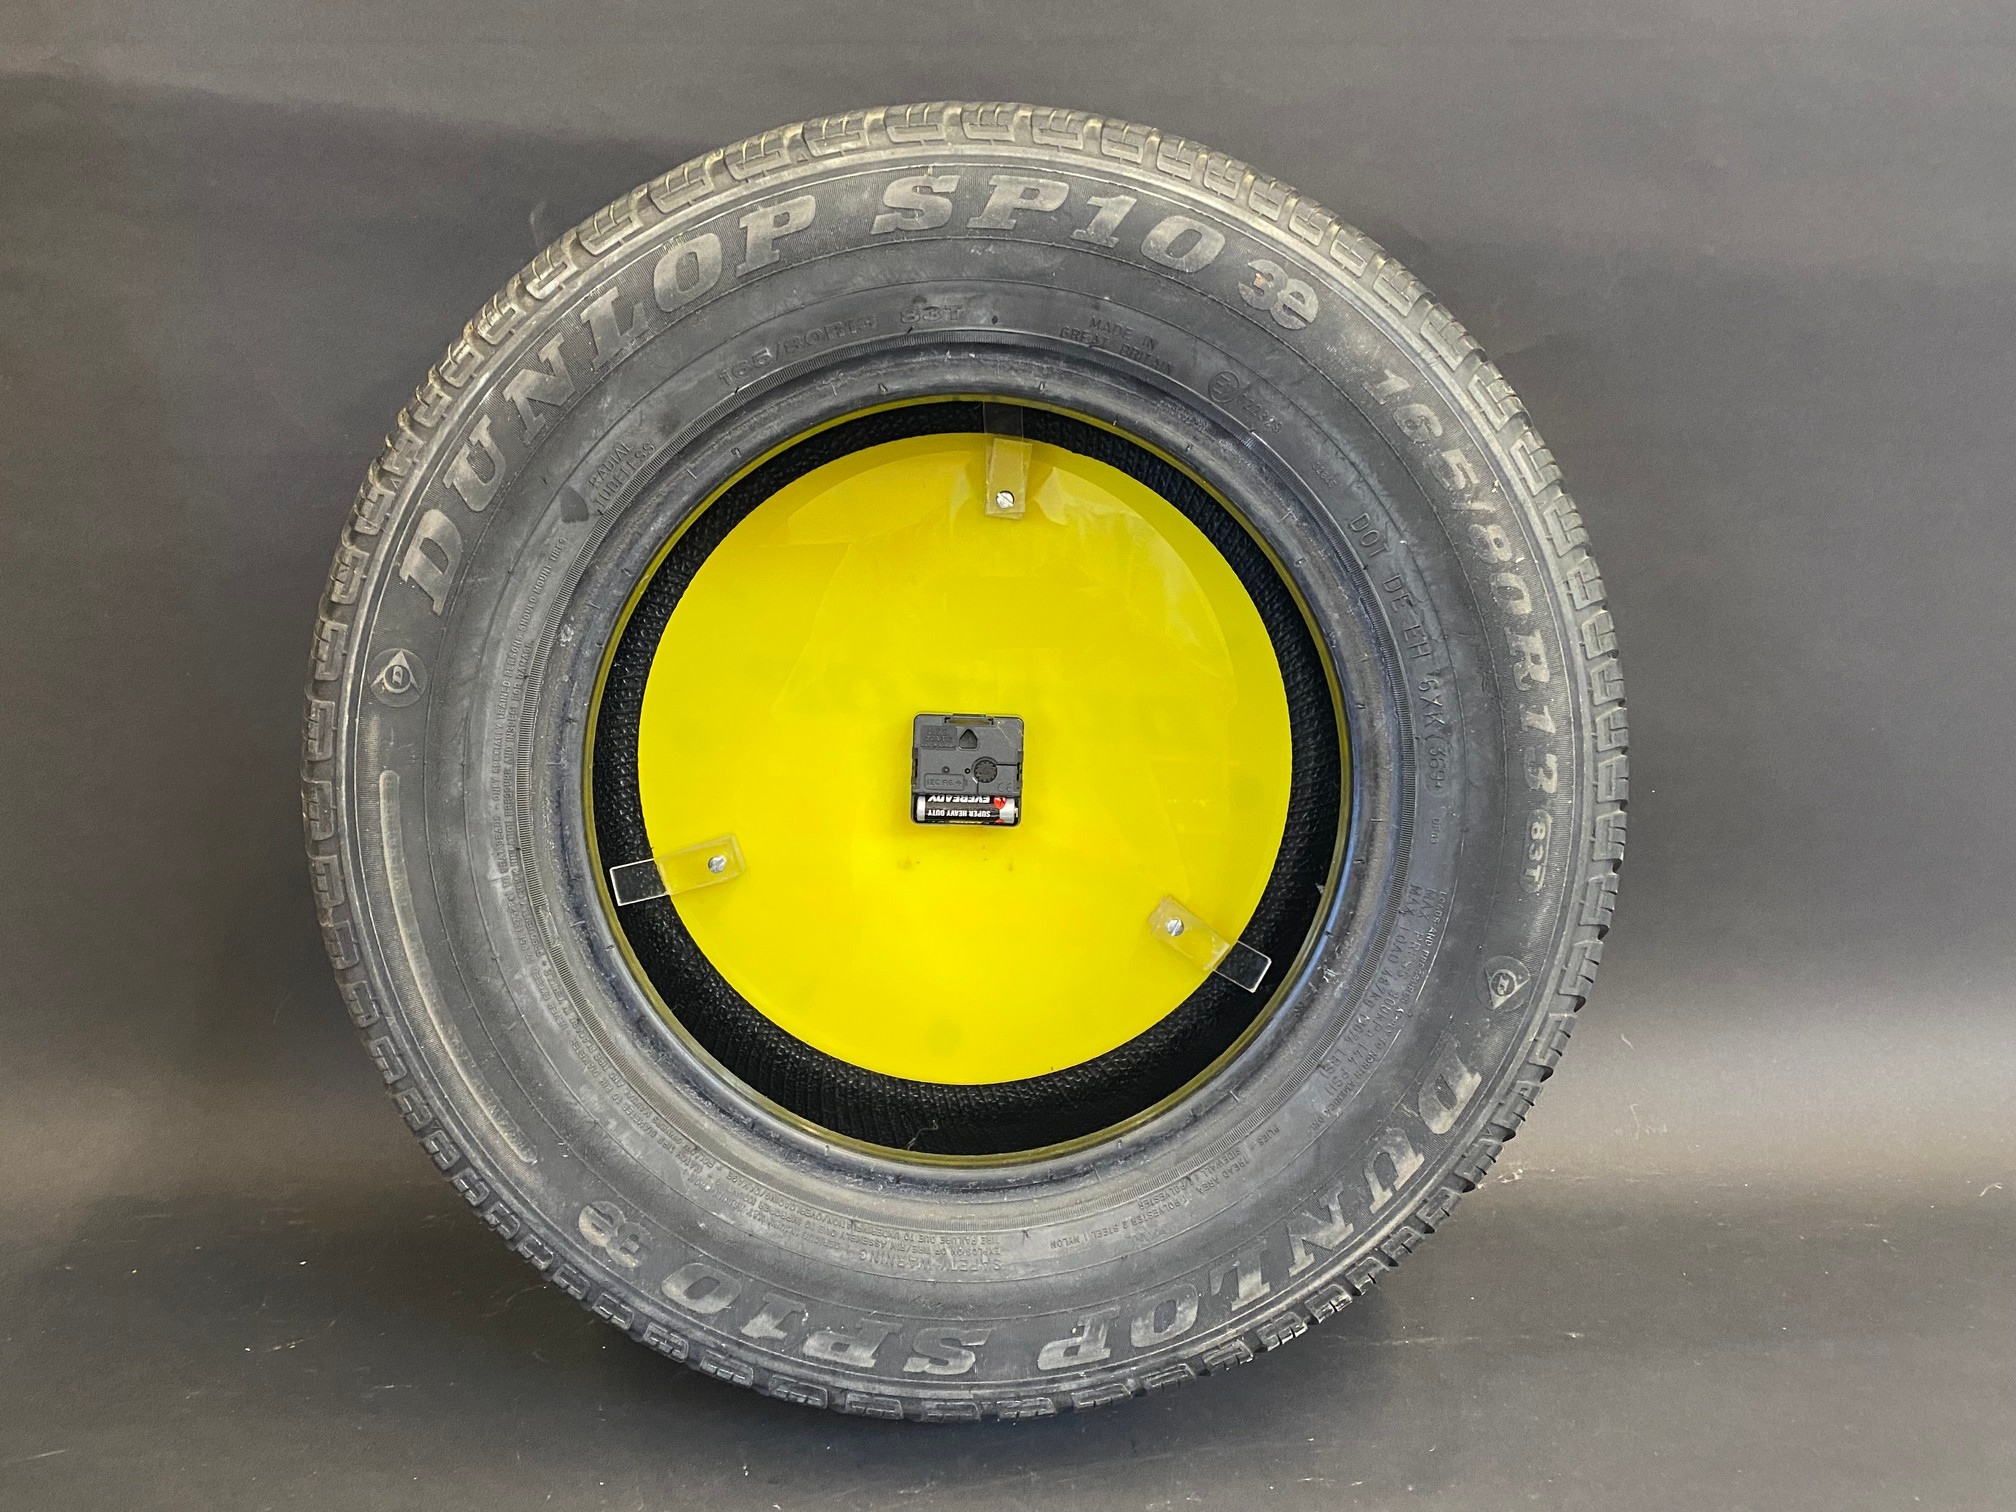 """A quirky Dunlop Radial Tyres perspex advertising clock set within a full size car tyre, 22 1/2"""" - Image 2 of 2"""